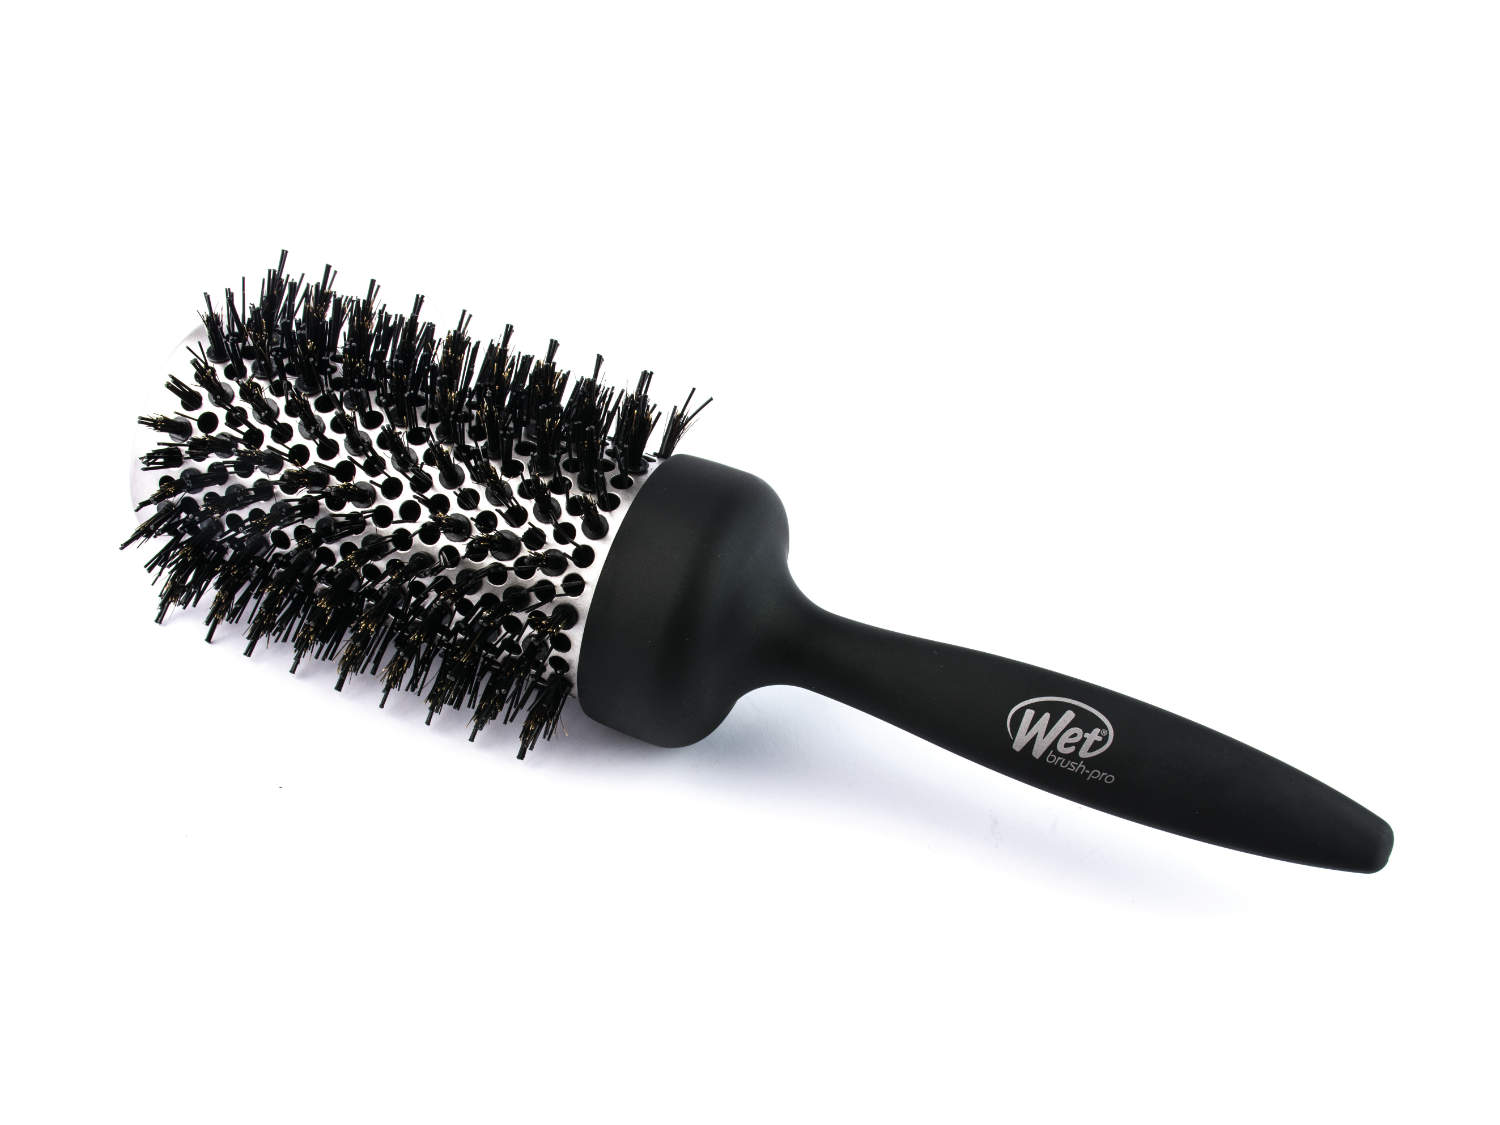 Arma Beauty - Wet Brush - BWPEPICLNL